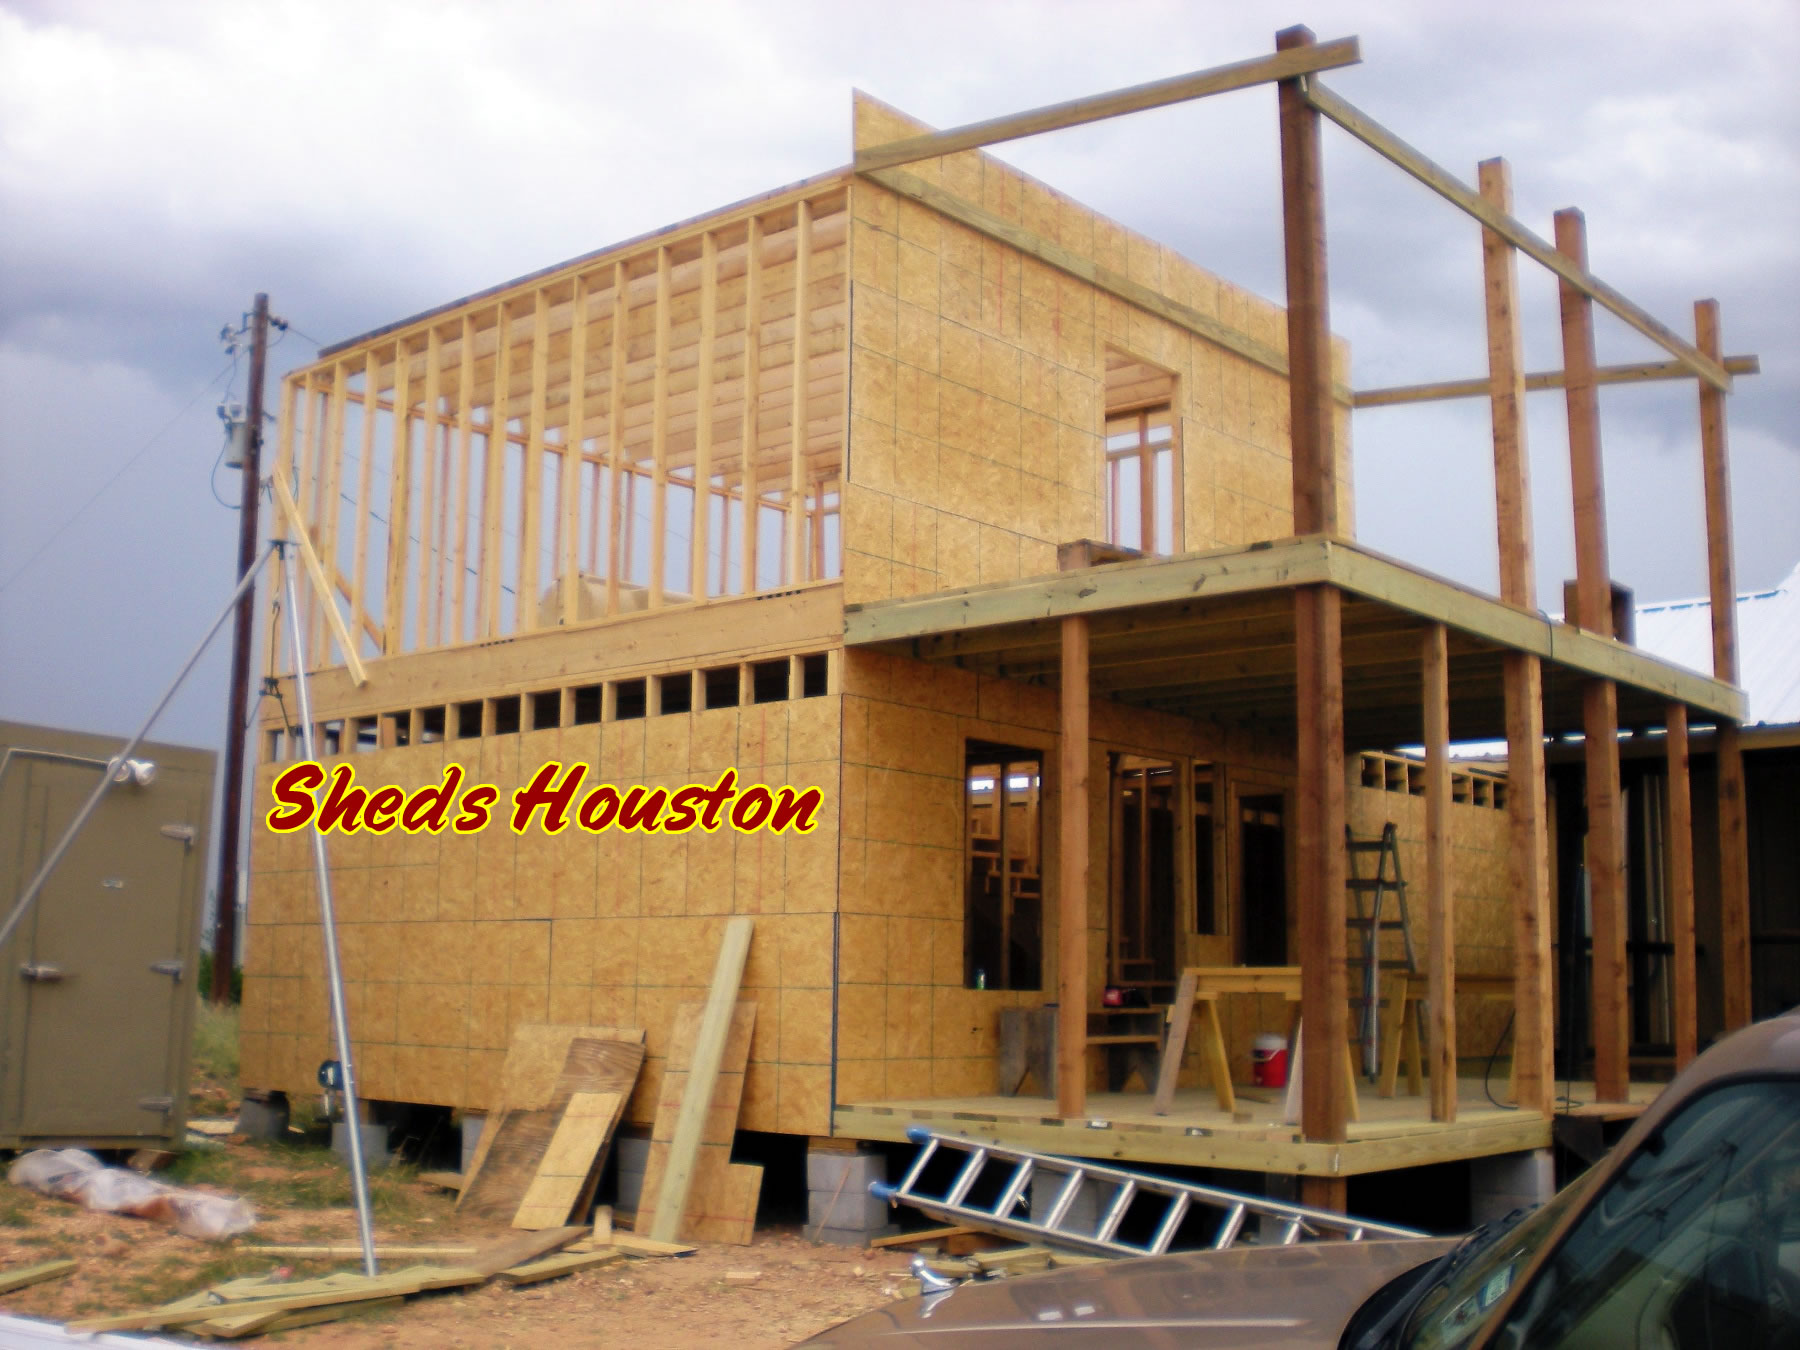 Sheds fences decks sheds 2 story office building for How to build a 2 story shed